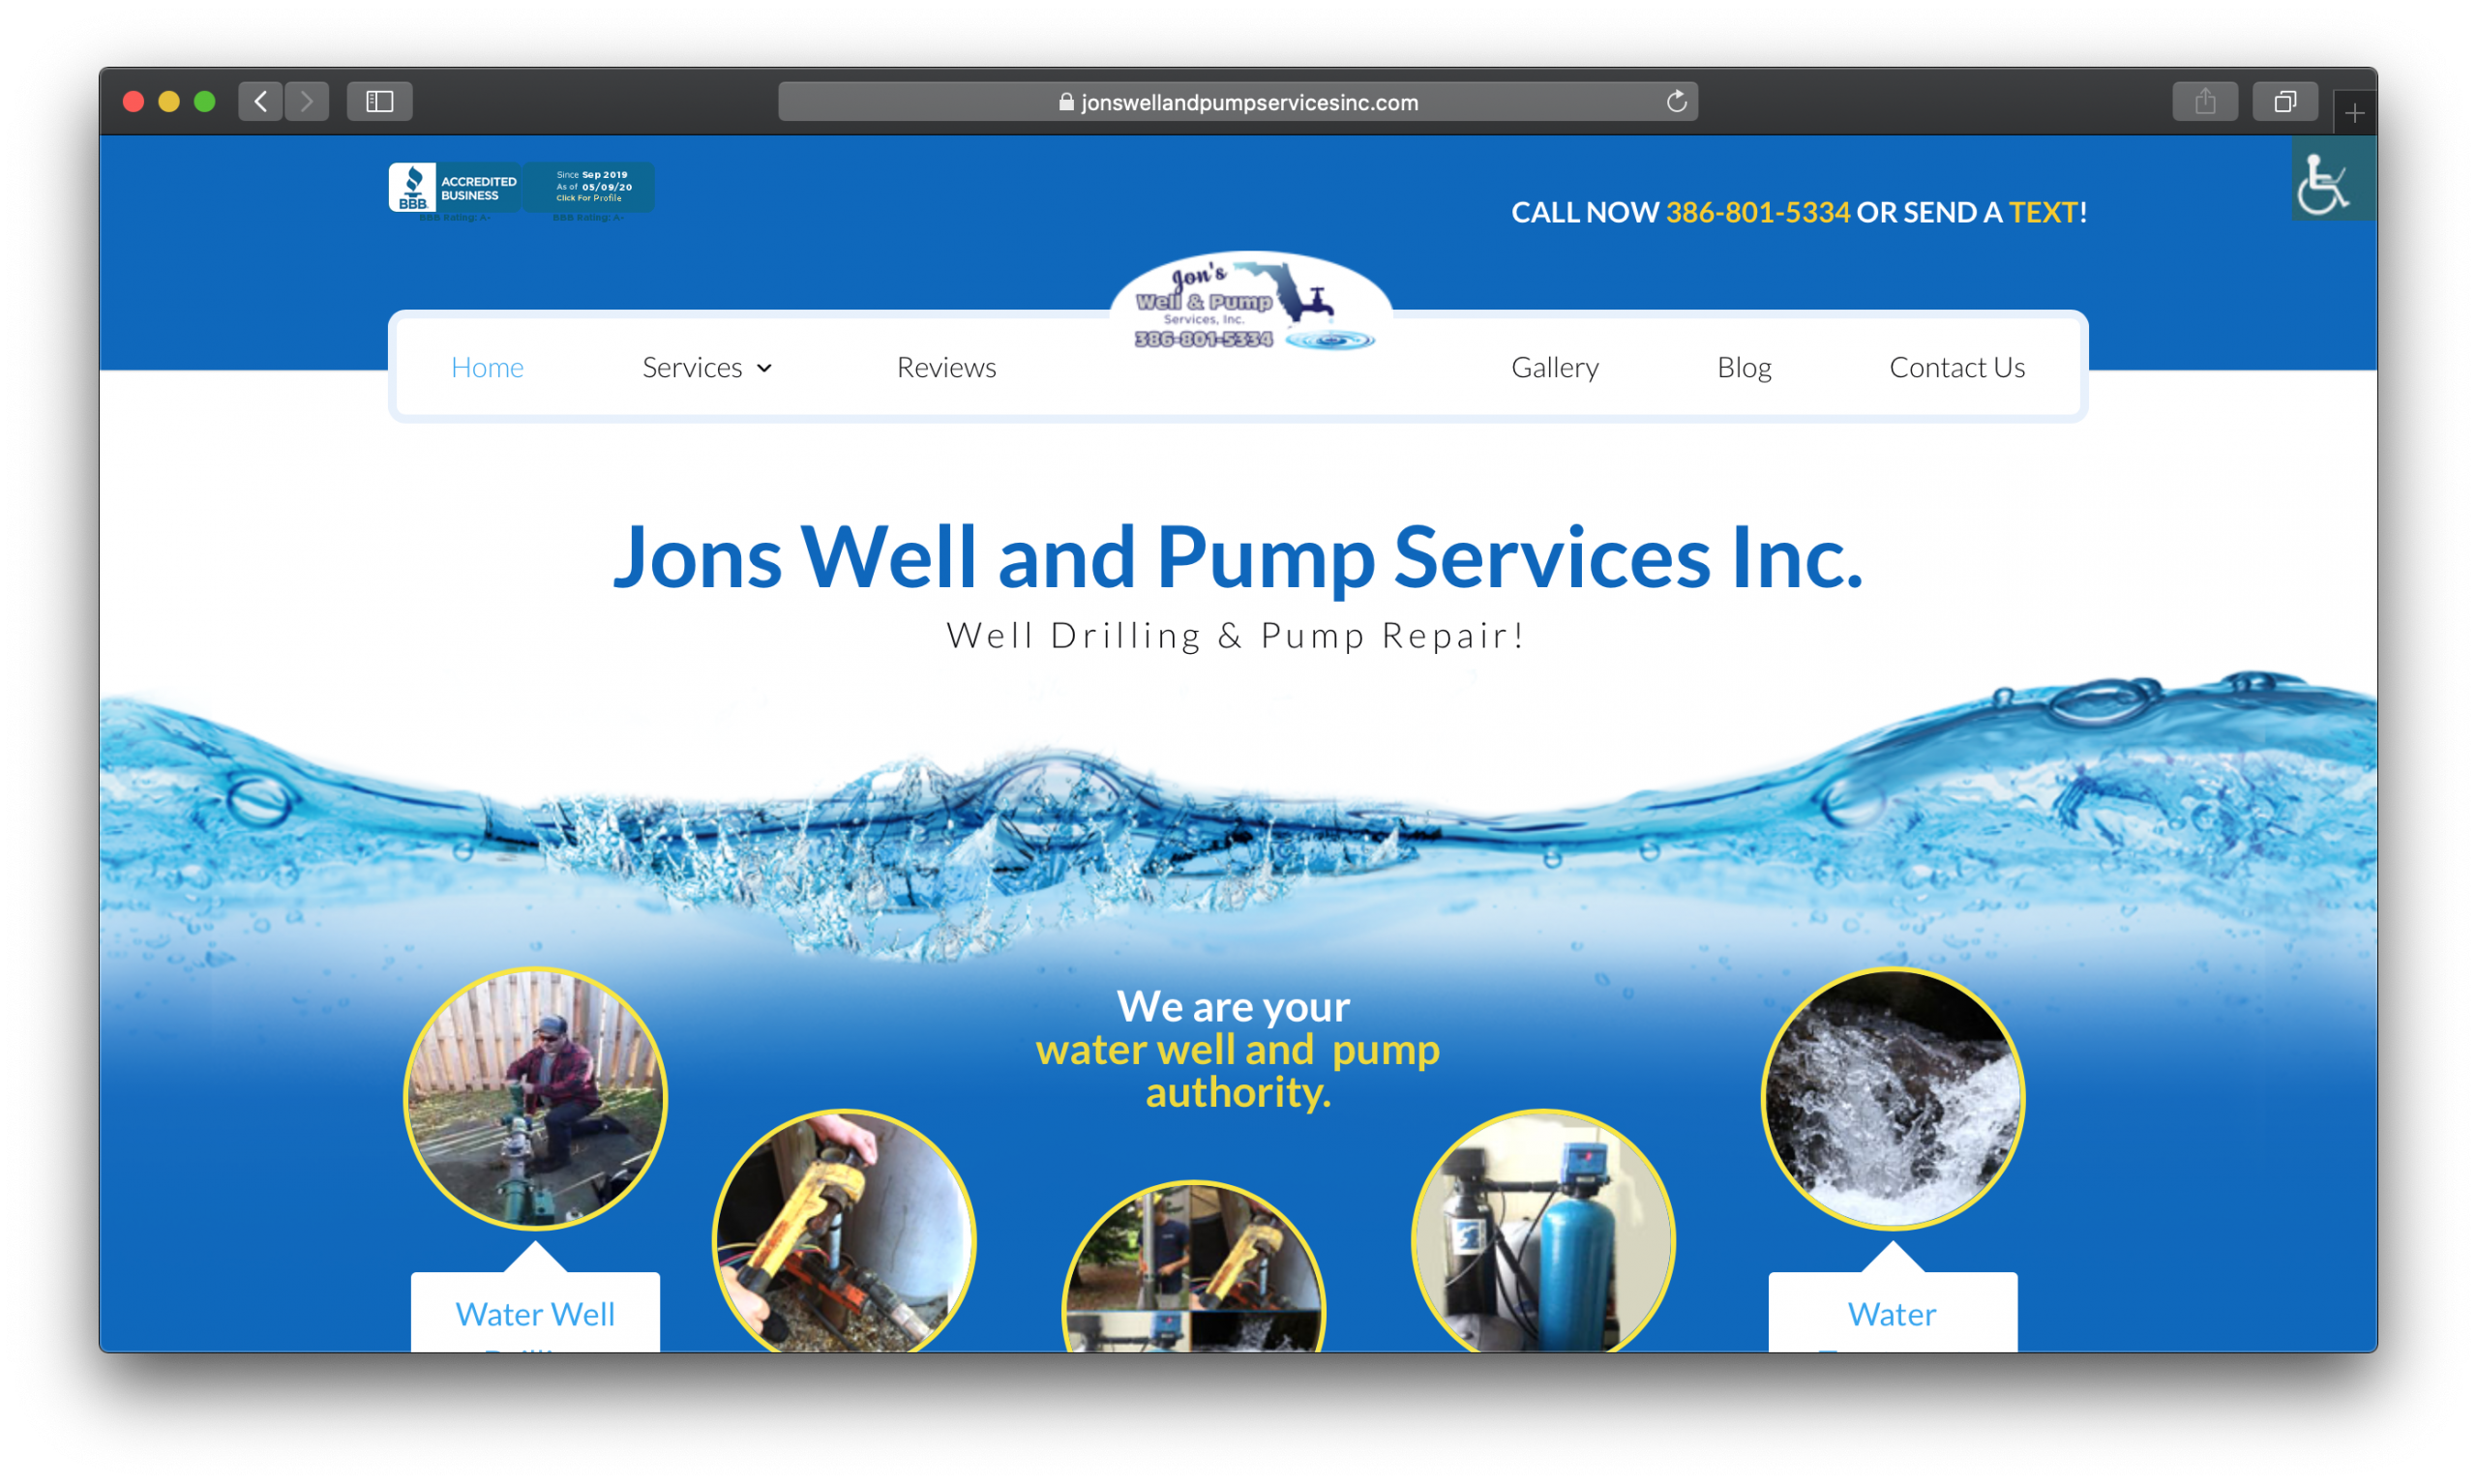 Jon's Well and Pump Services Inc.